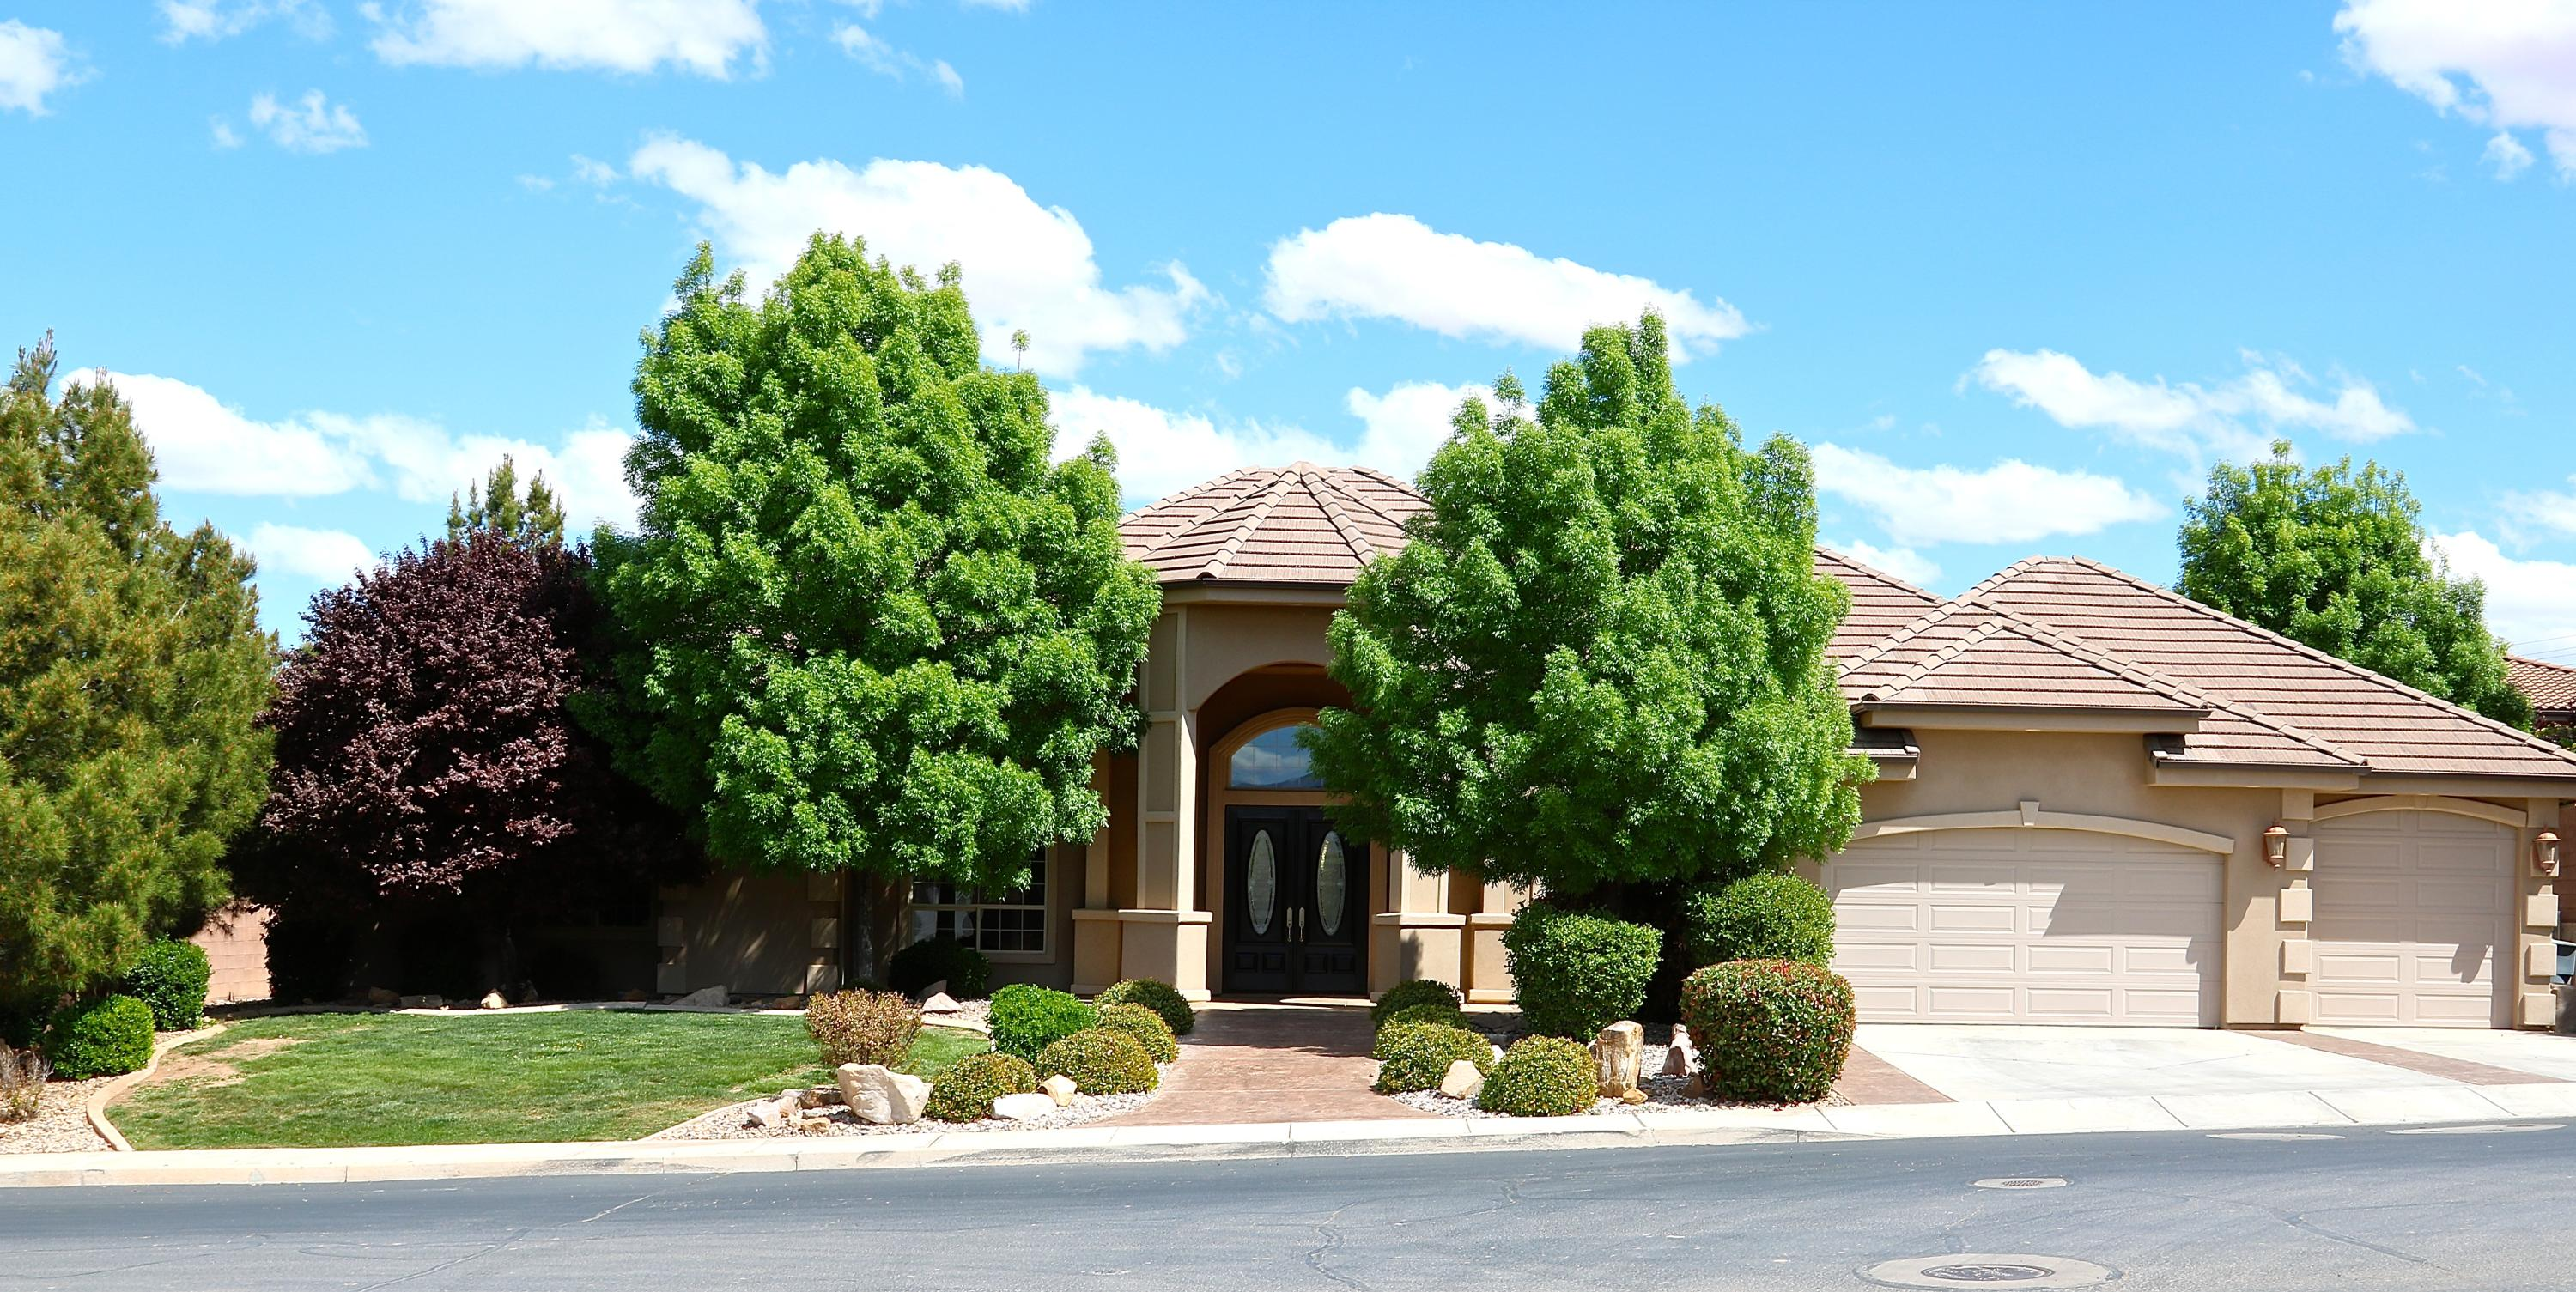 1369 S 2580  E, St George in Washington County, UT 84790 Home for Sale